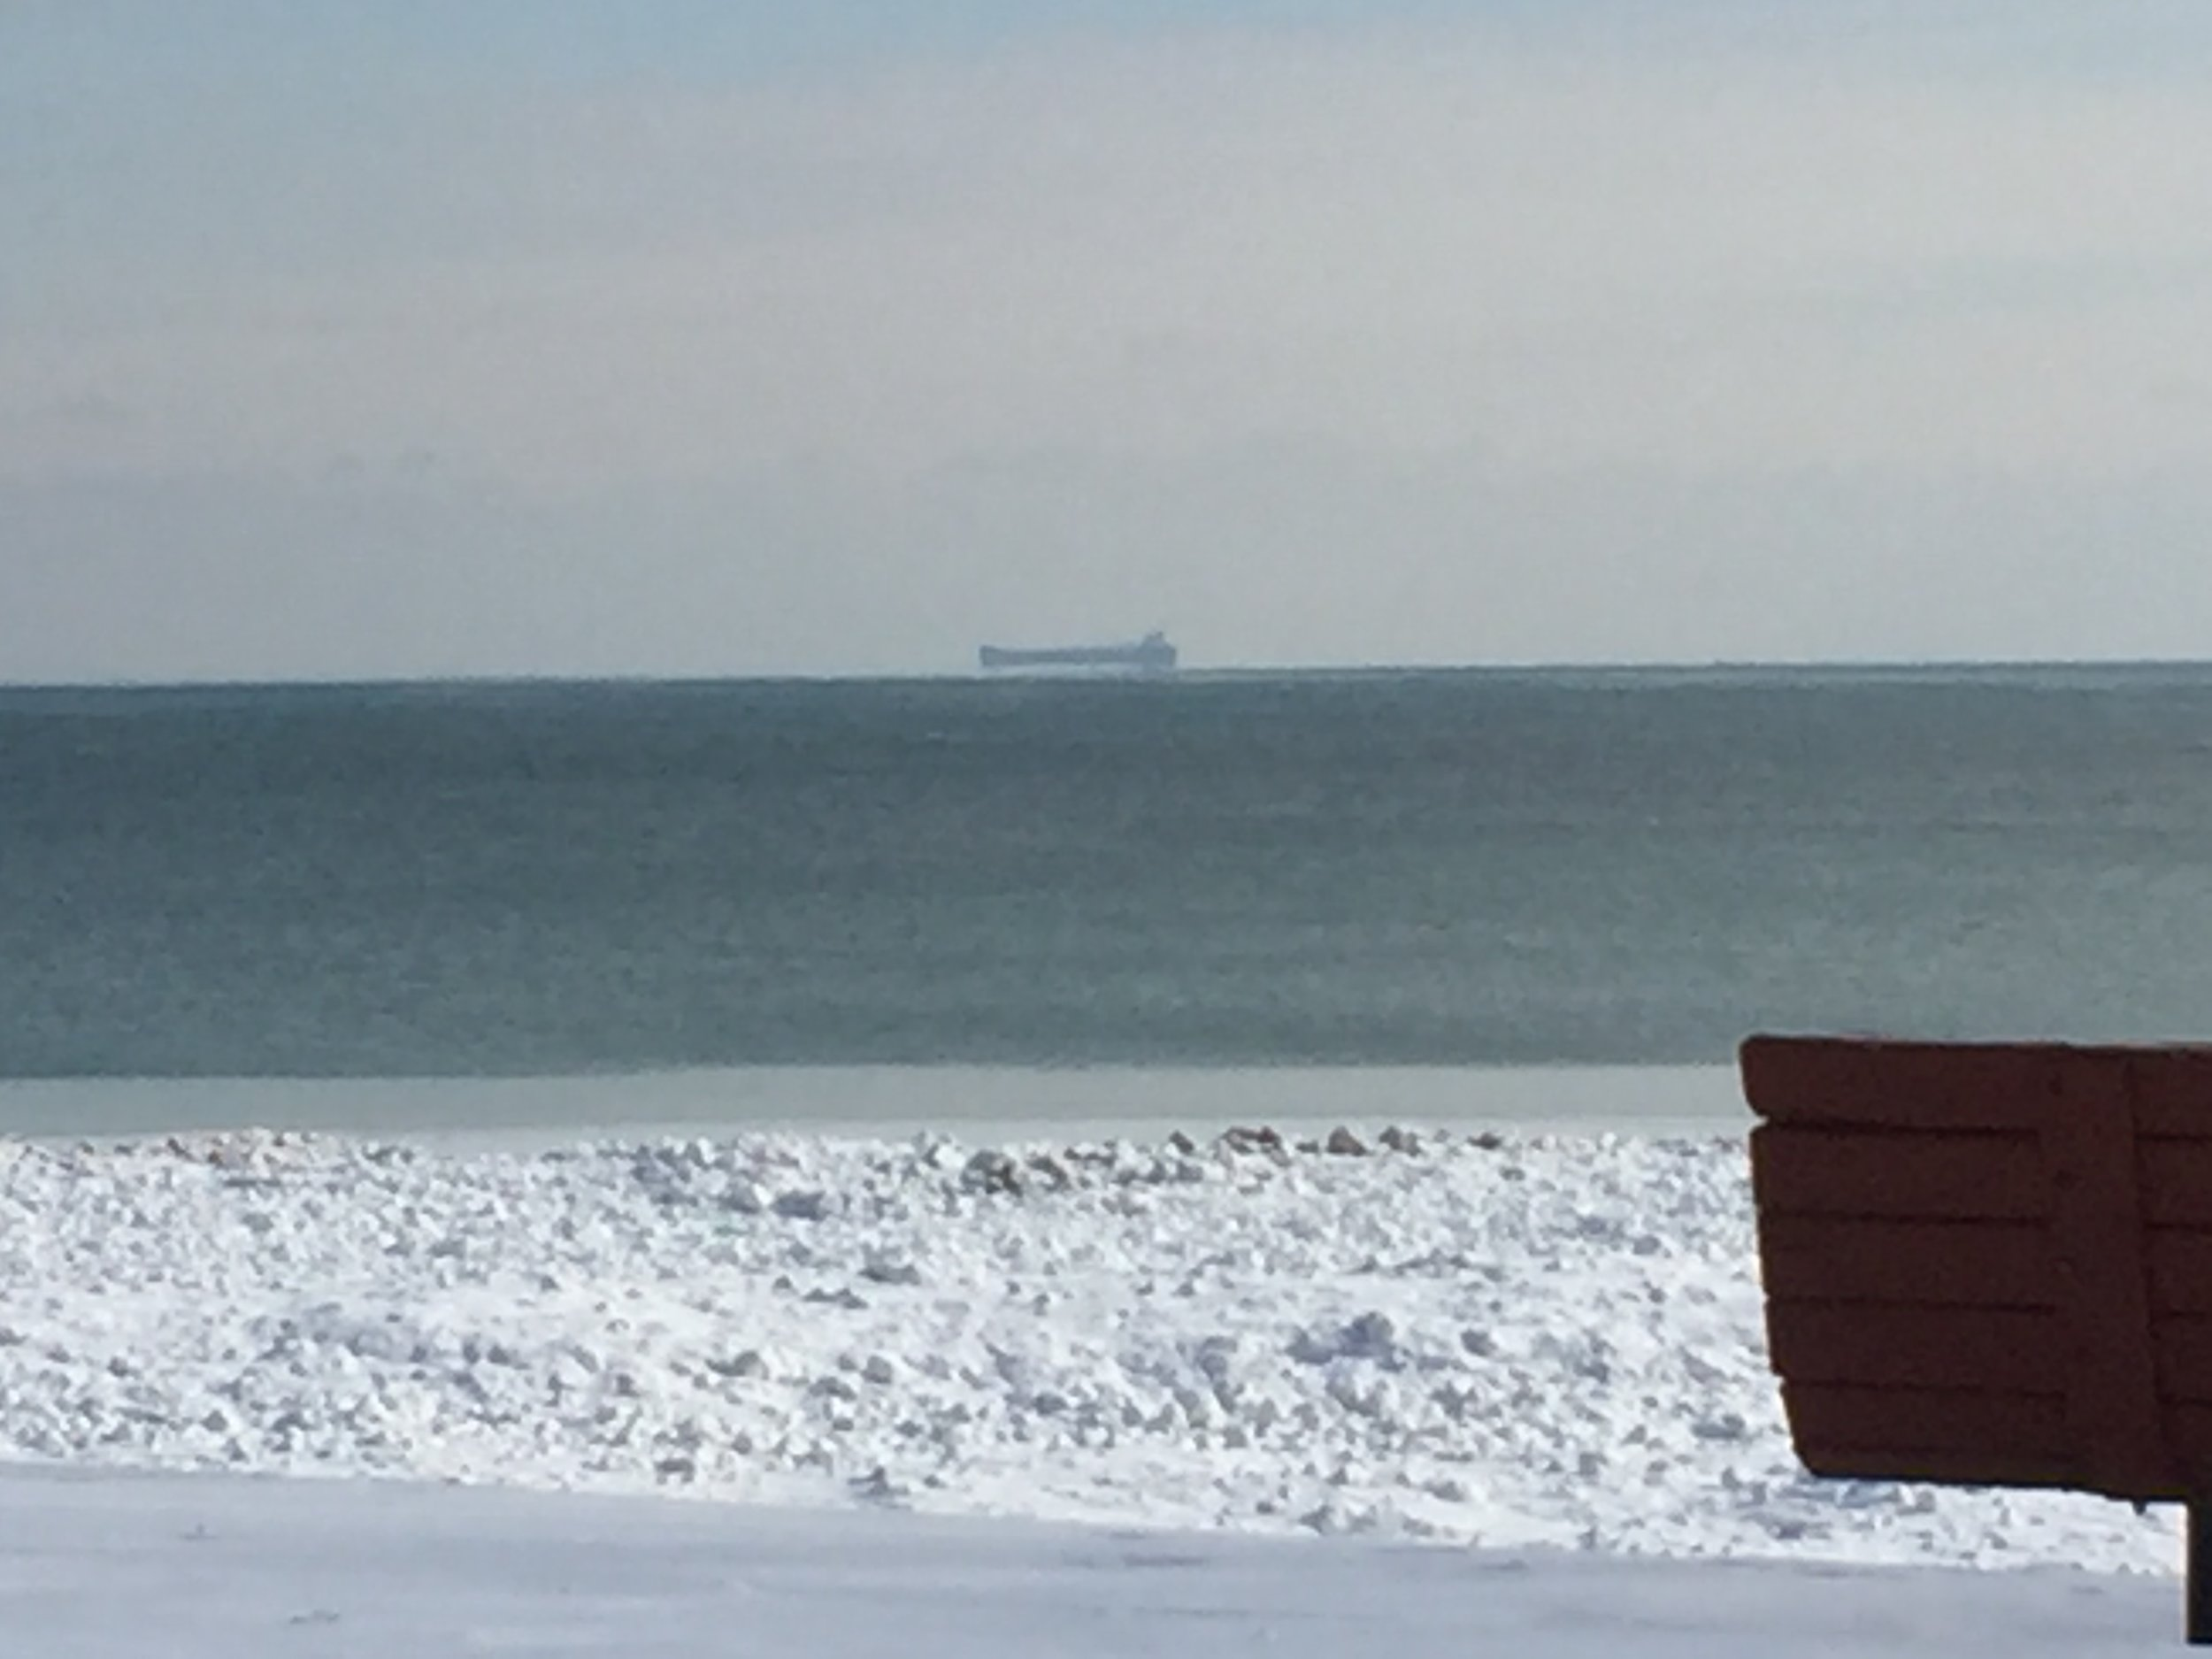 A large lake freighter on the open waters of Lake Michigan, February 2018